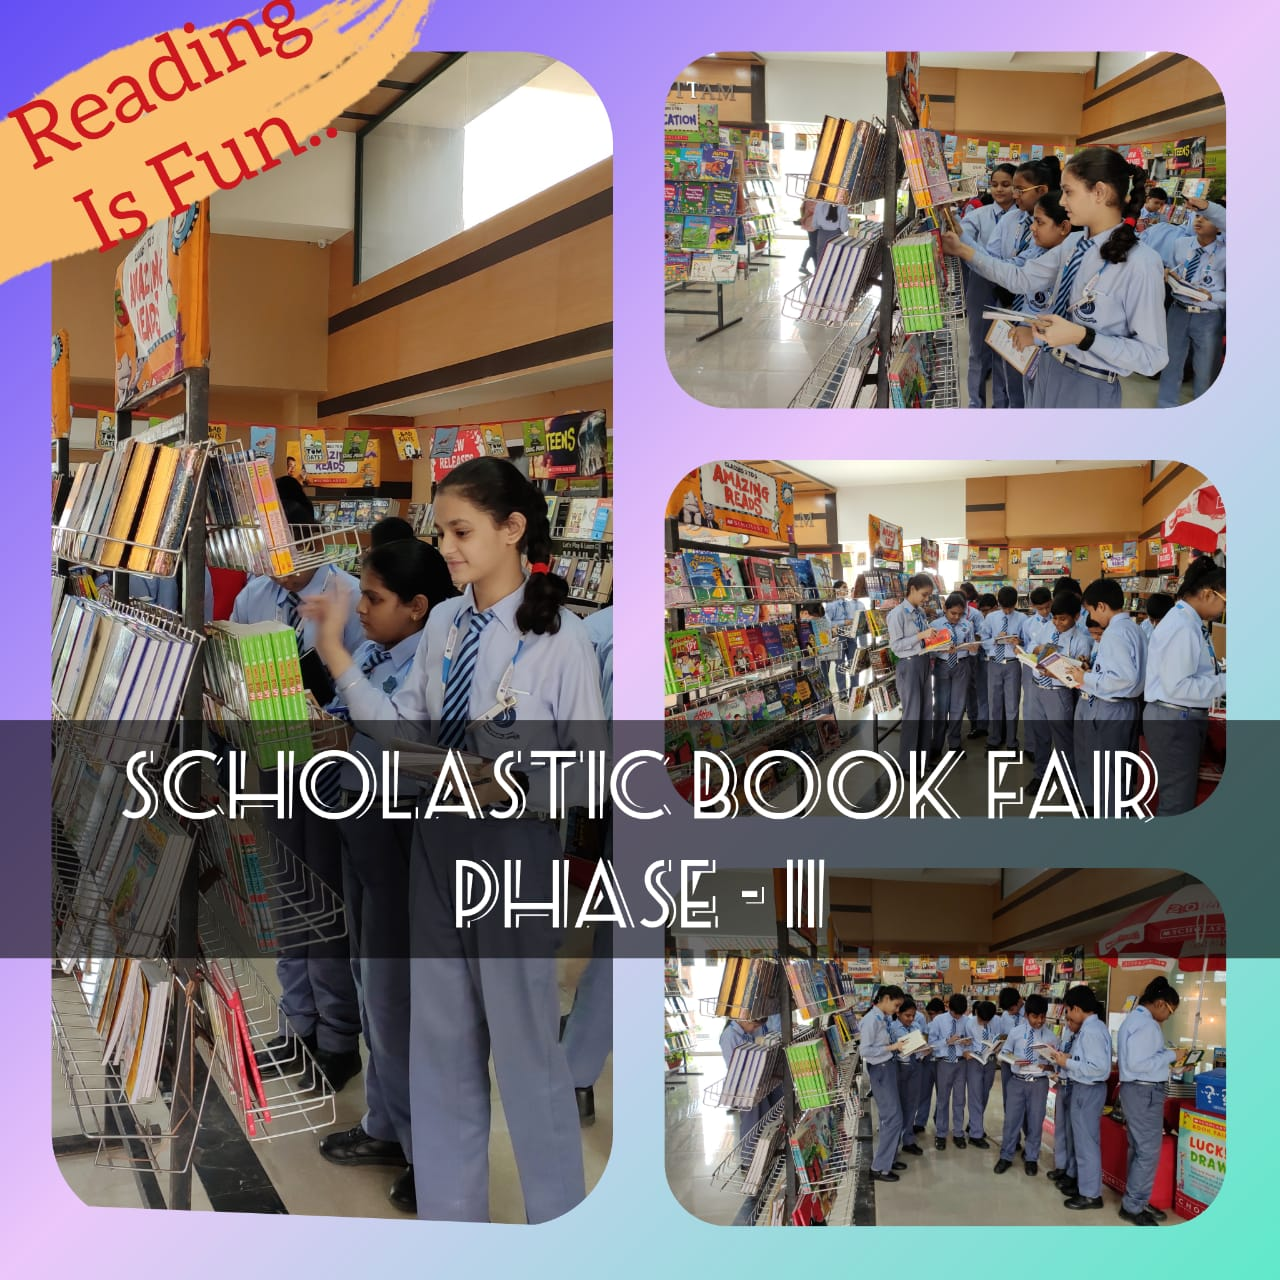 Scholastic Book Fair Phase-II